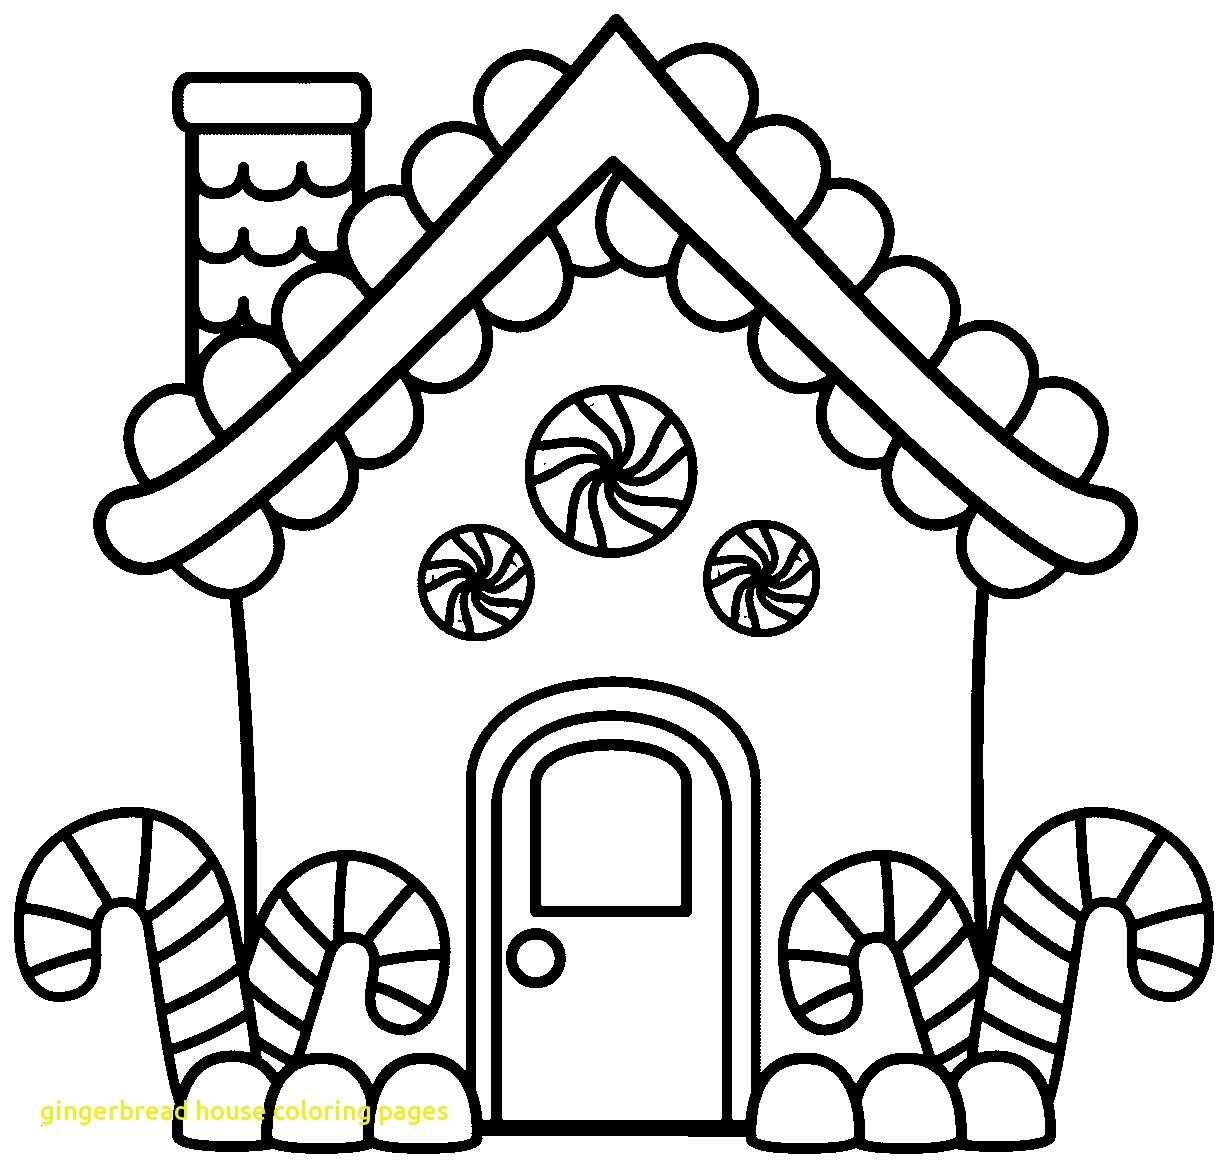 Christmas Coloring Sheets Gingerbread Man With Pages 30 Inspirational